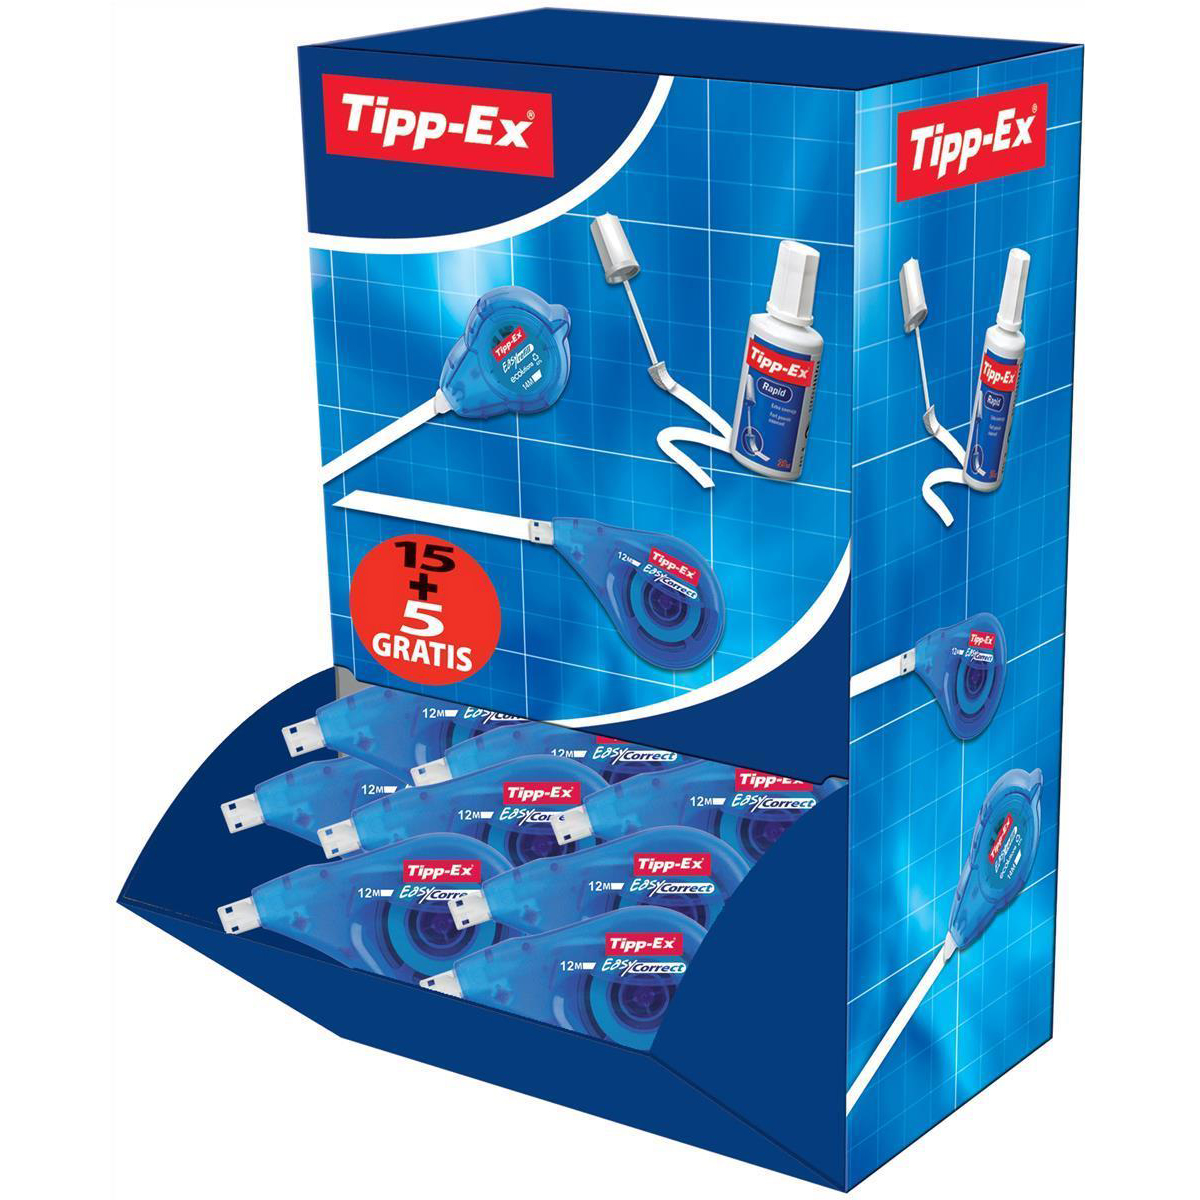 Tipp-Ex Easy-correct Correction Tape Roller 4.2mmx12m Ref 895951 Pack 15 & 5